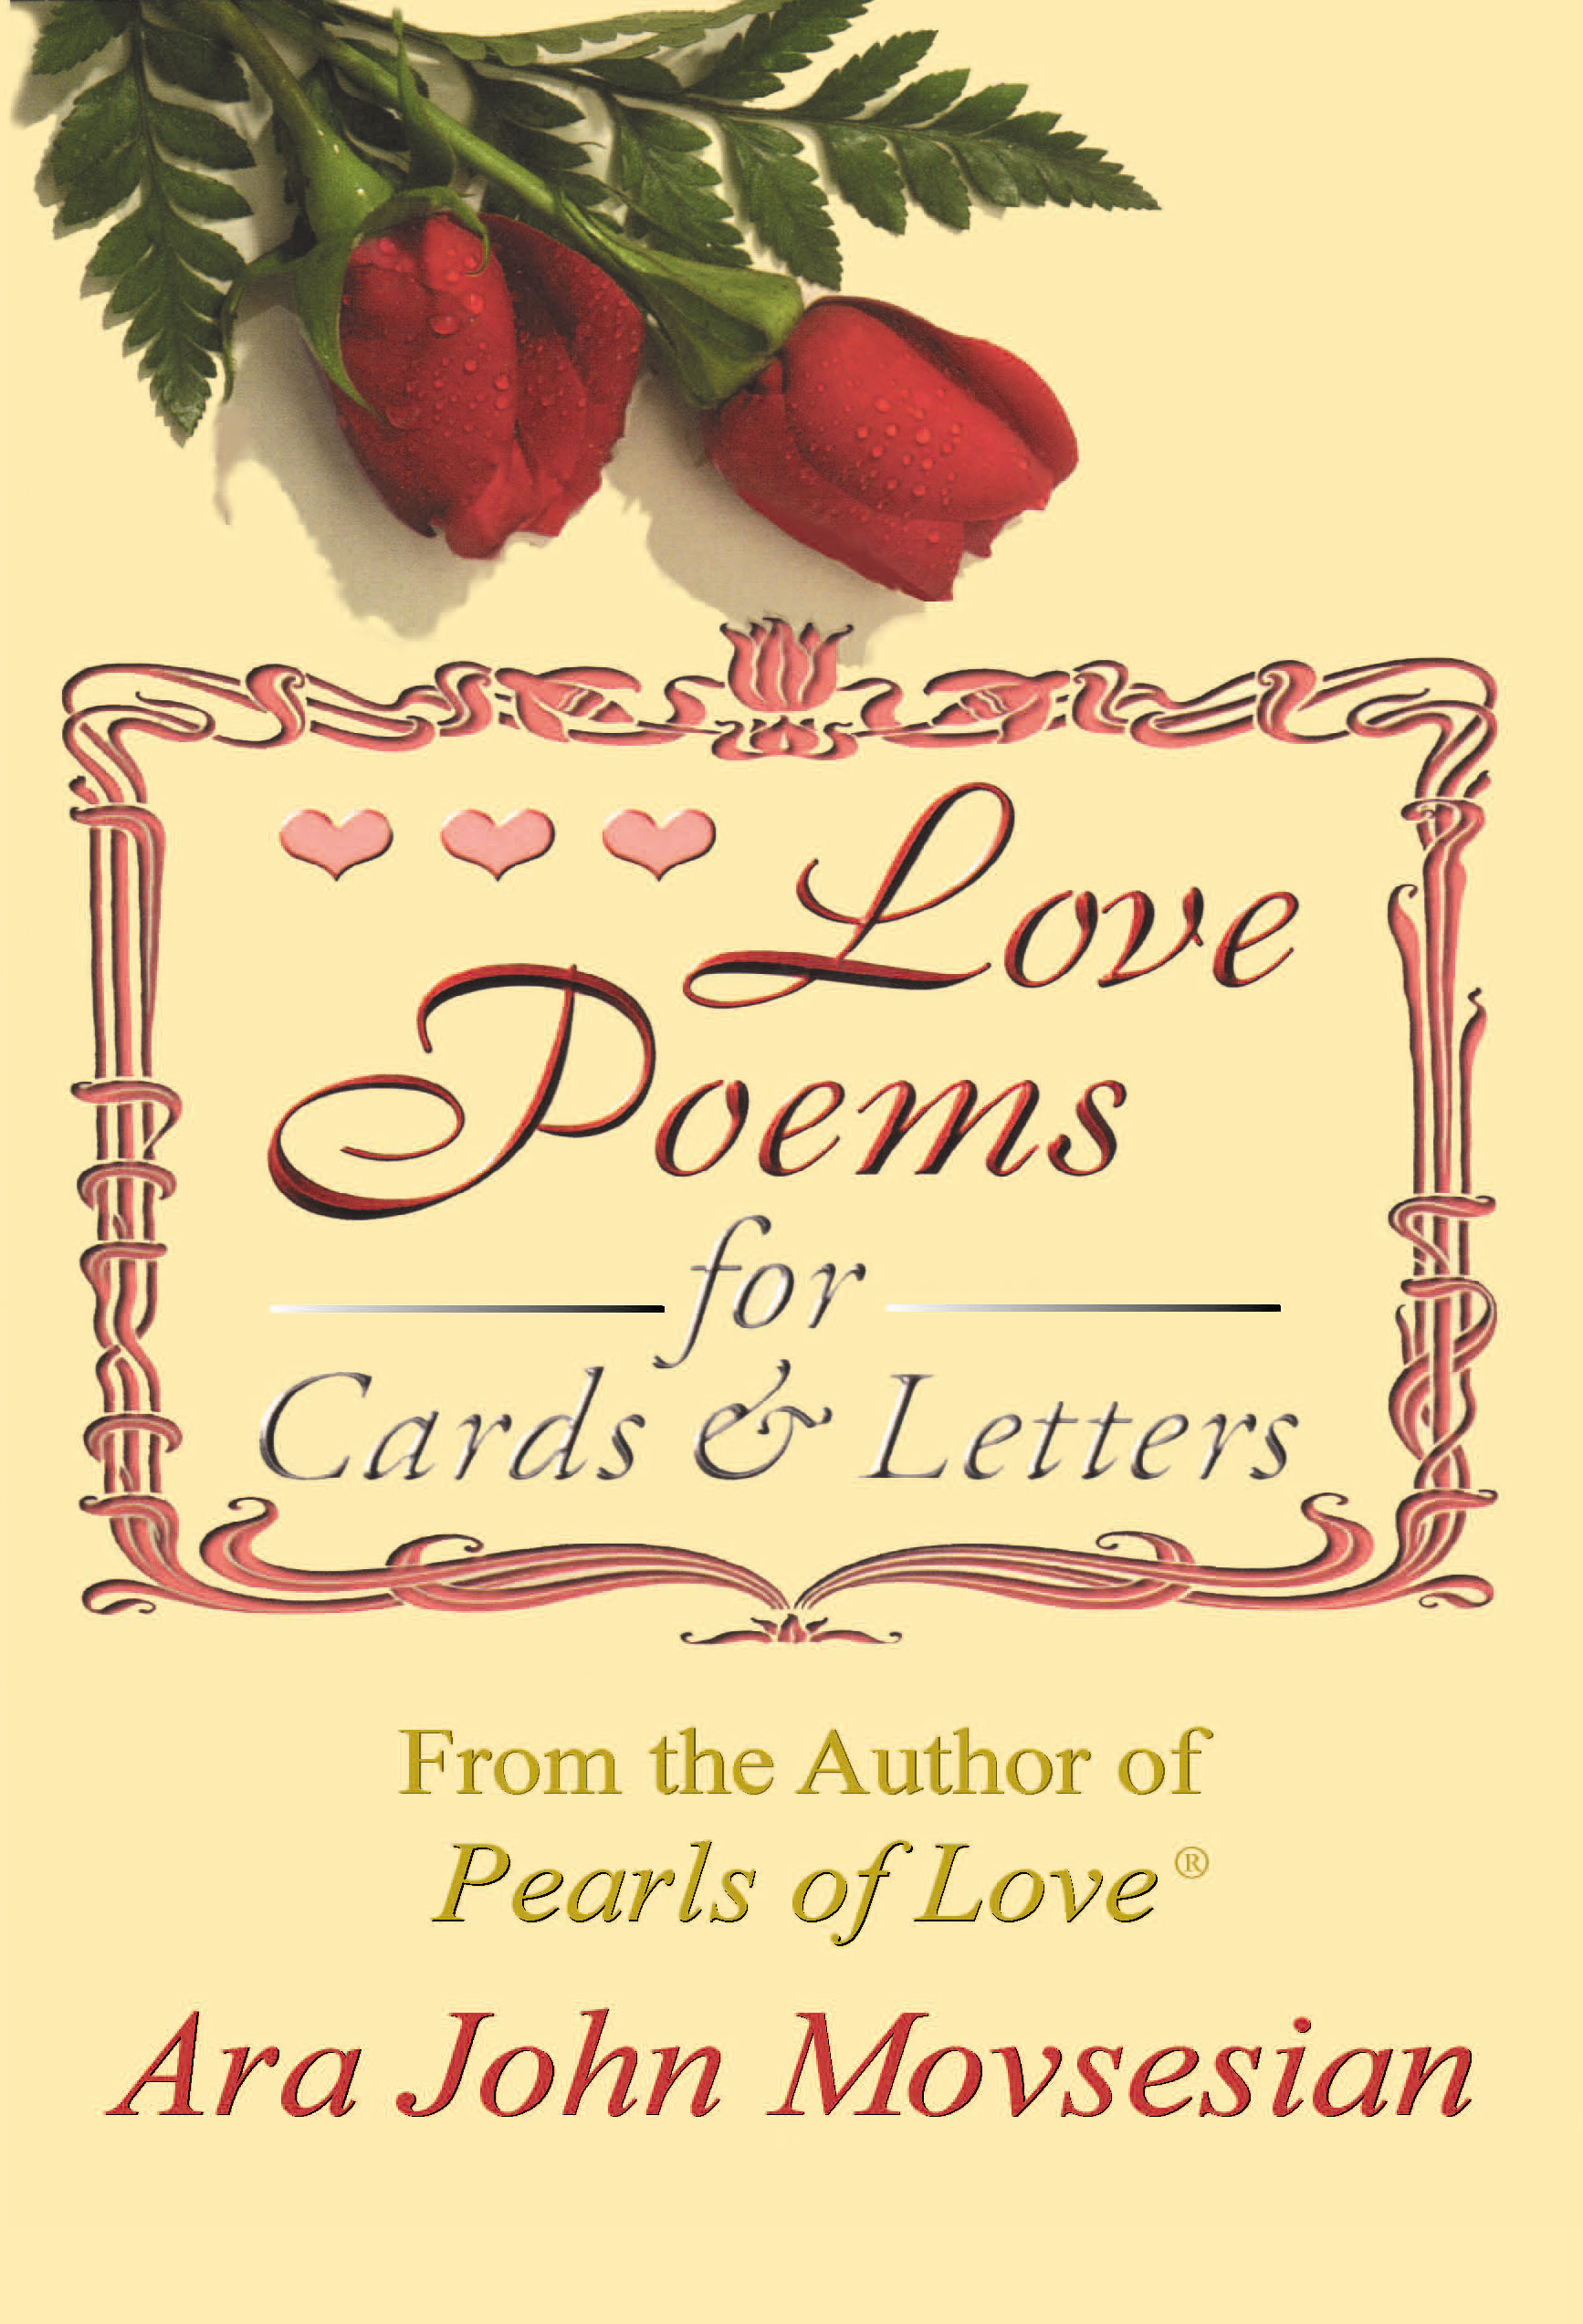 Love Poems for Cards & Letters